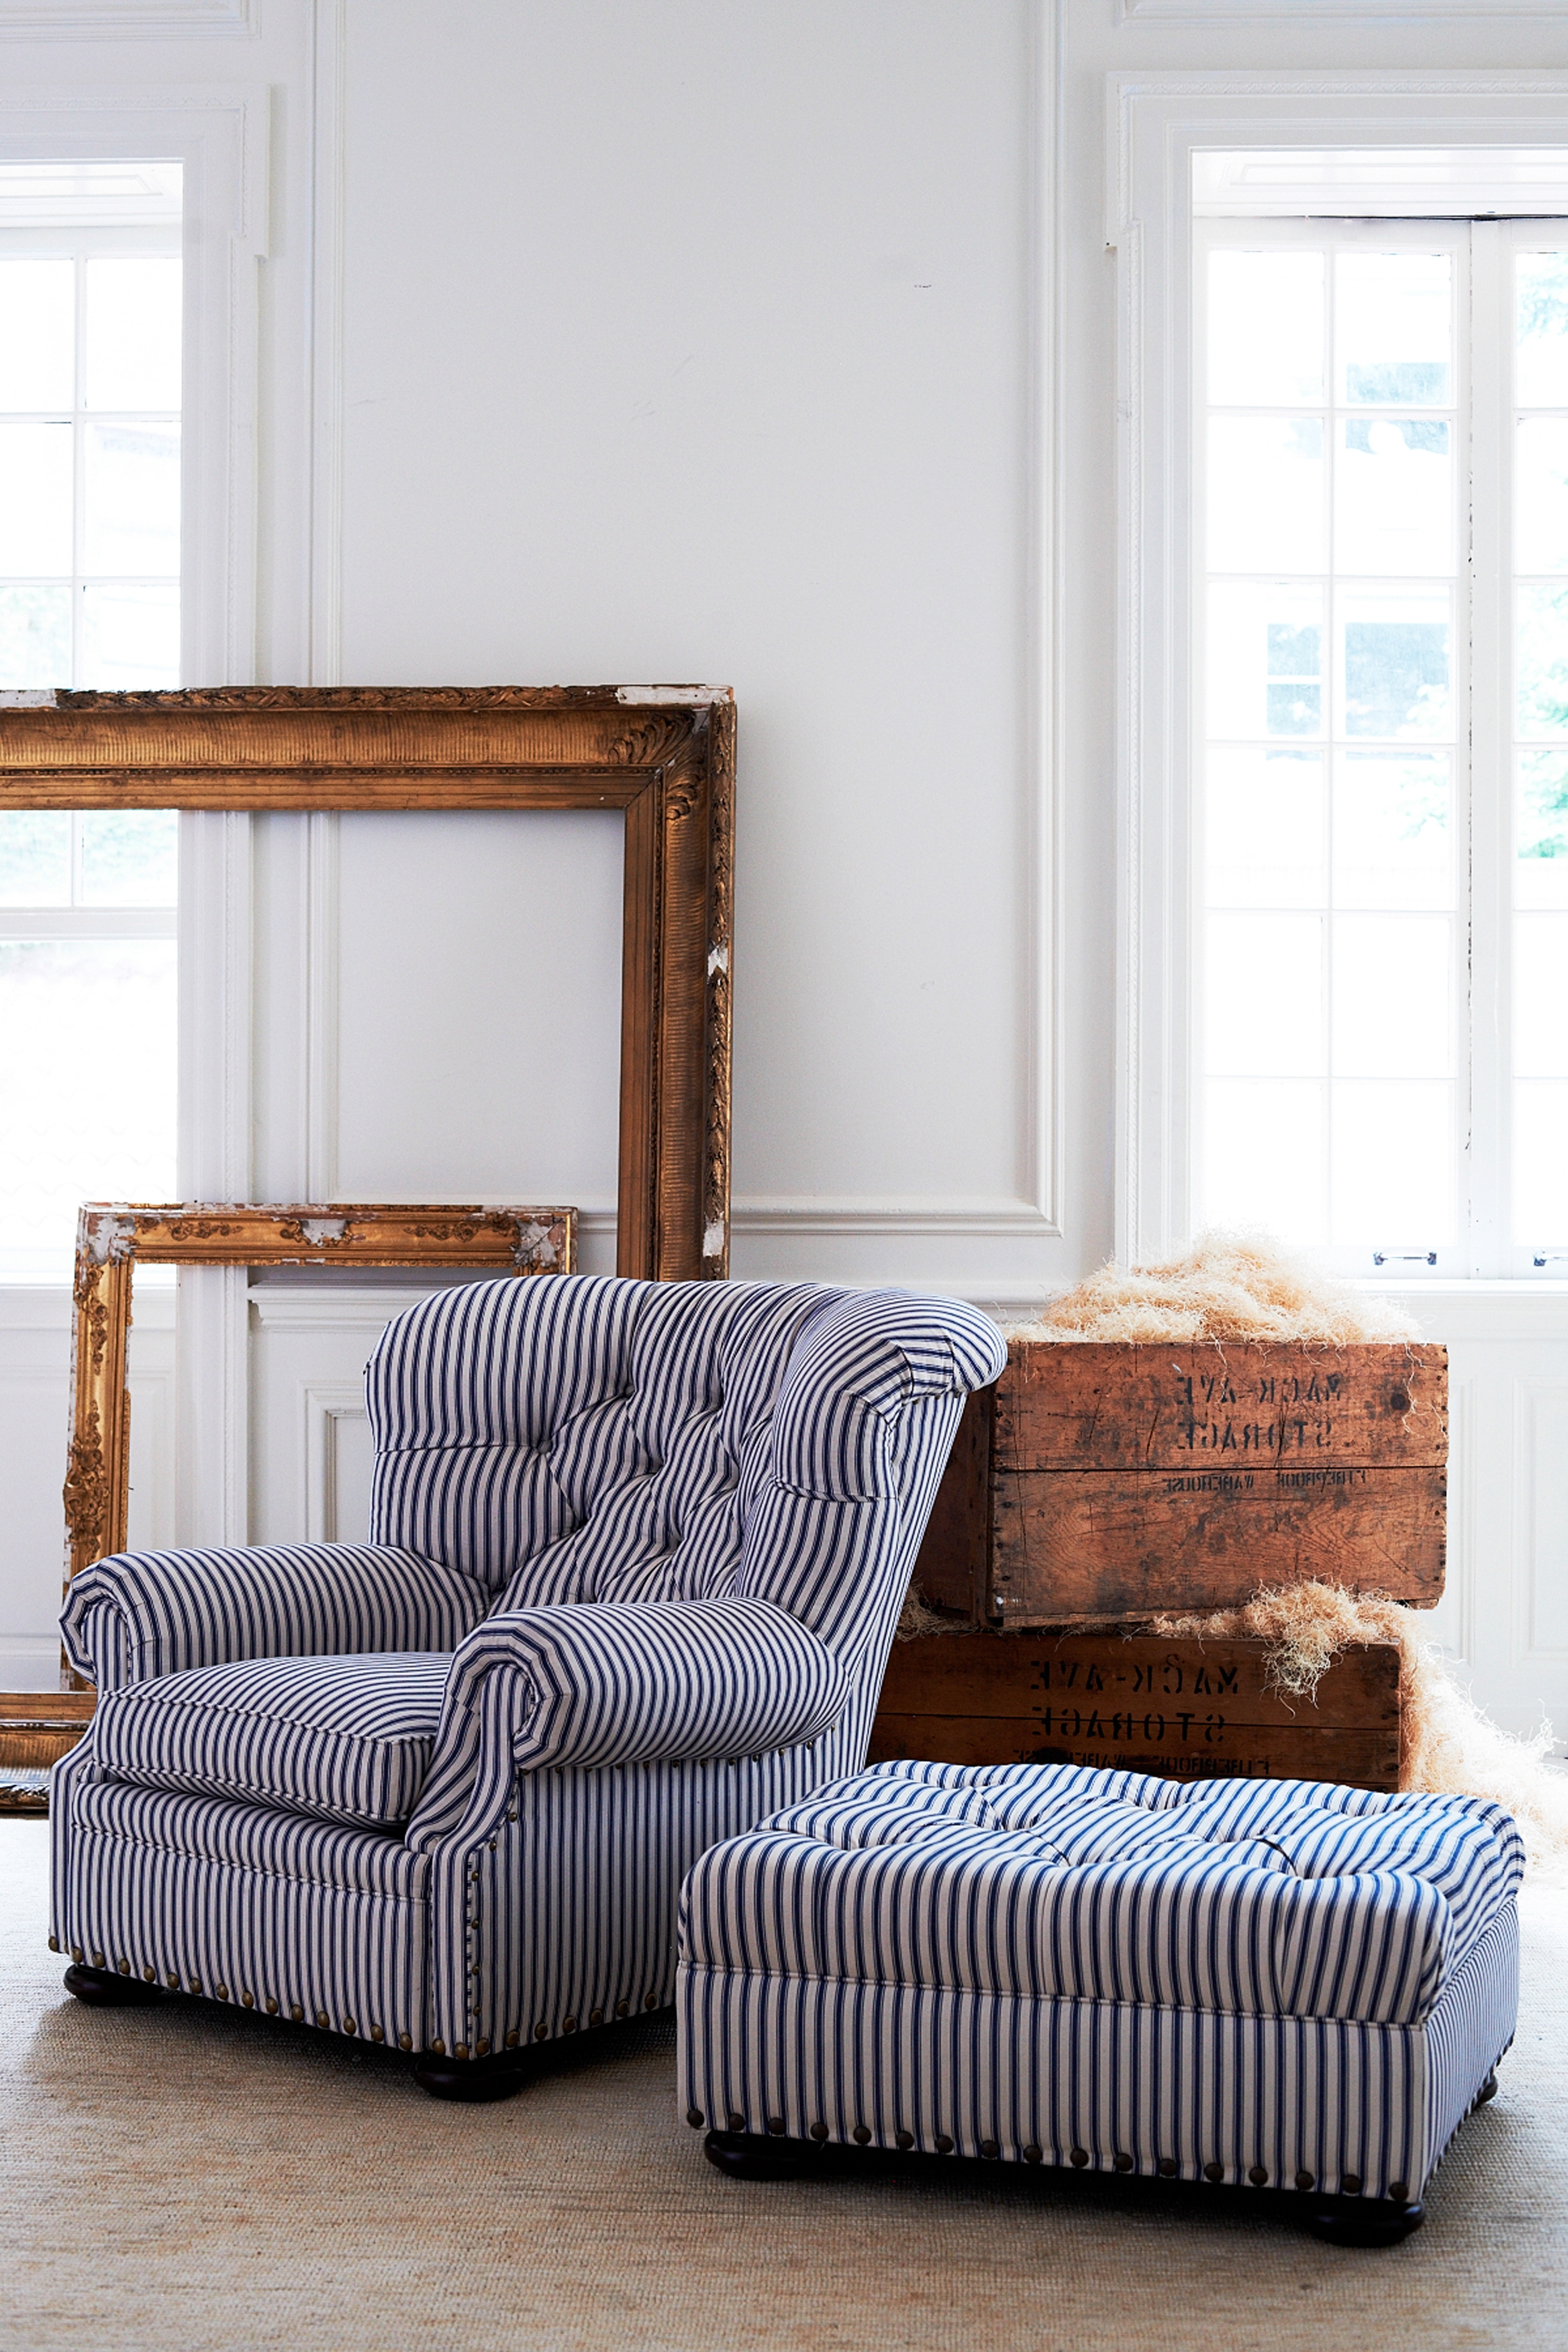 Striped Sofas And Chairs Pertaining To Well Known Ralph Lauren Home's Tufted Writer's Chair And Ottoman Reimagined (View 13 of 15)